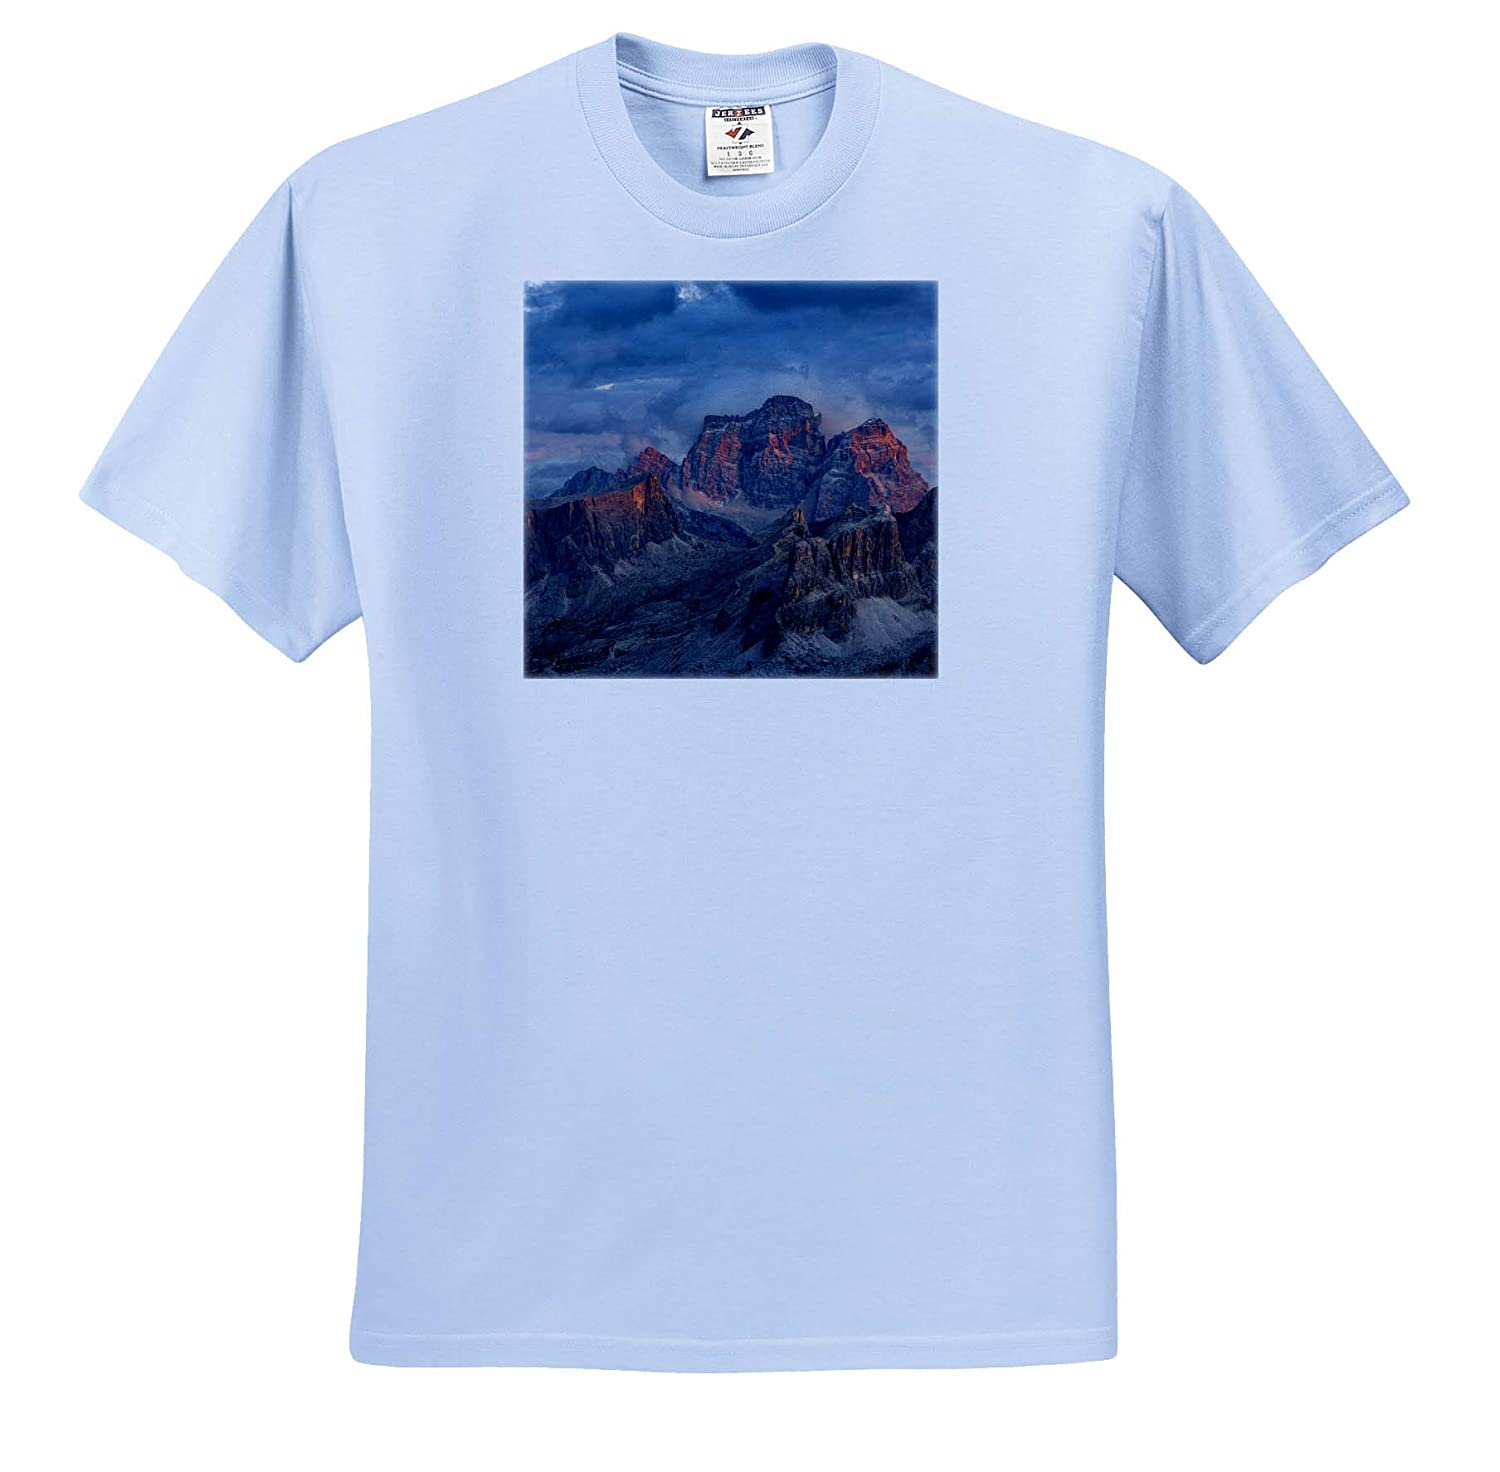 - Adult T-Shirt XL ts/_313724 Italy 3dRose Danita Delimont The Dolomites in The Veneto Mountains